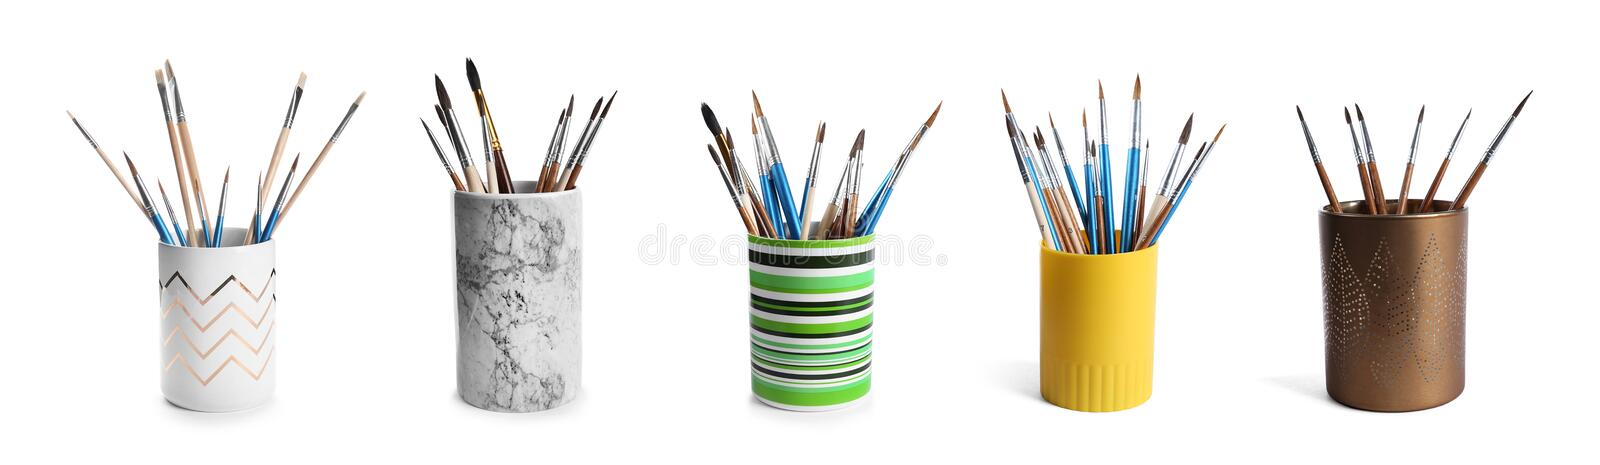 Set of holders with different paint brushes stock image